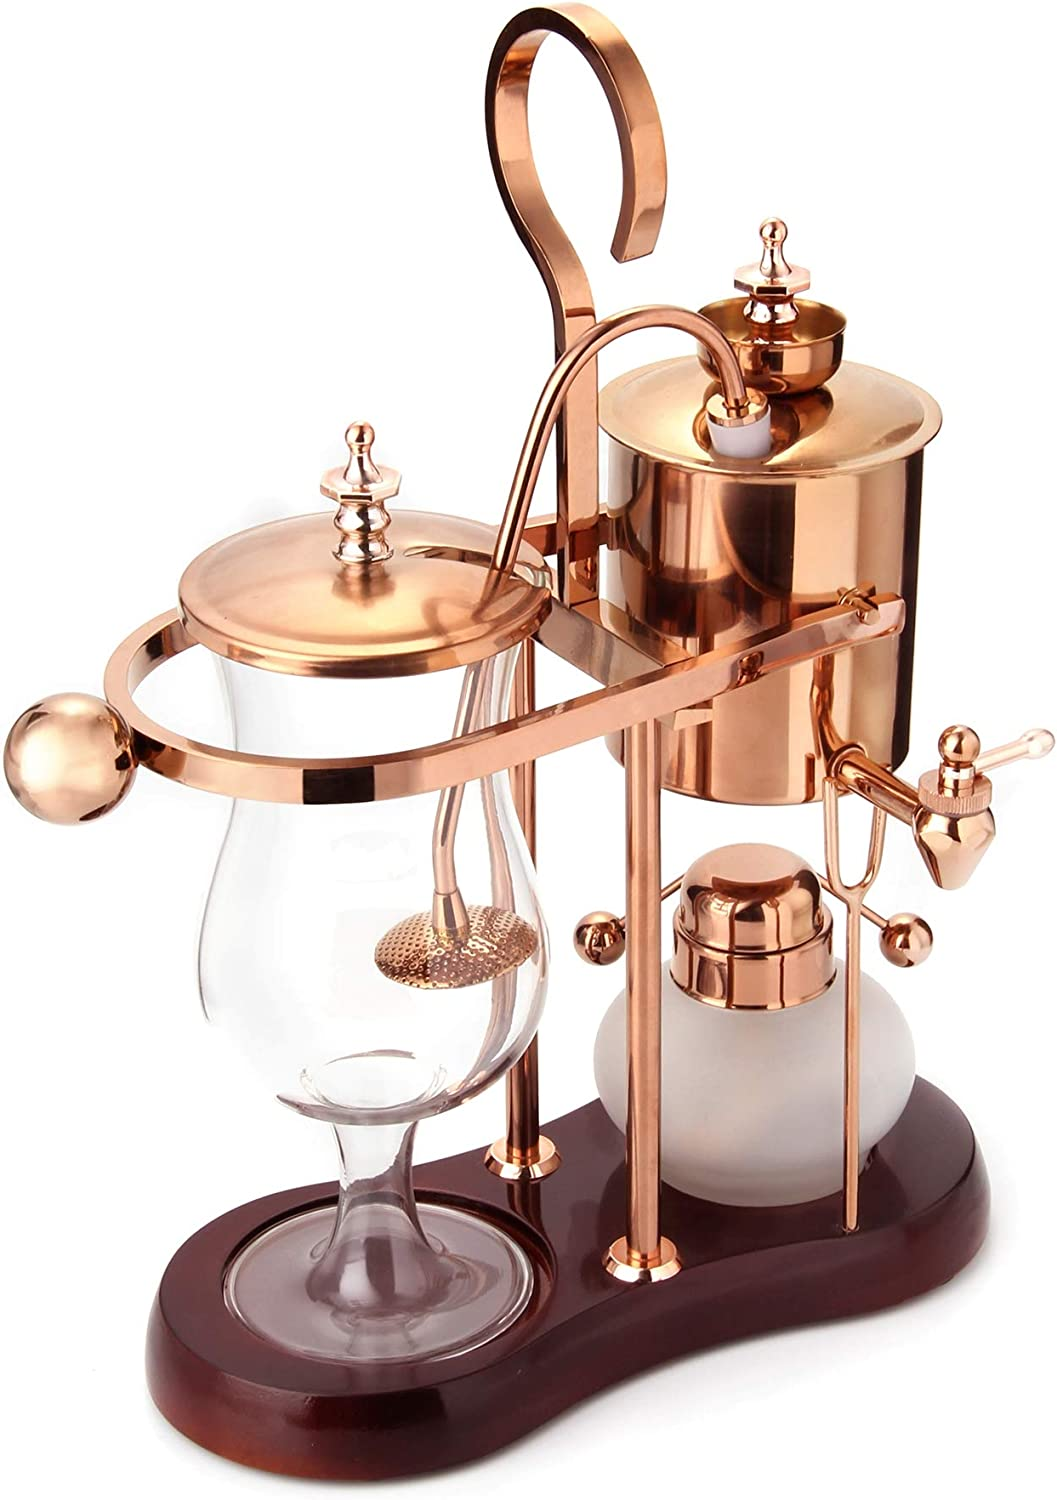 Diguo Belgian/Belgium Luxury Royal Family Balance Syphon Coffee Maker. Elegant Design Retro-Style (Polished Rose Gold)